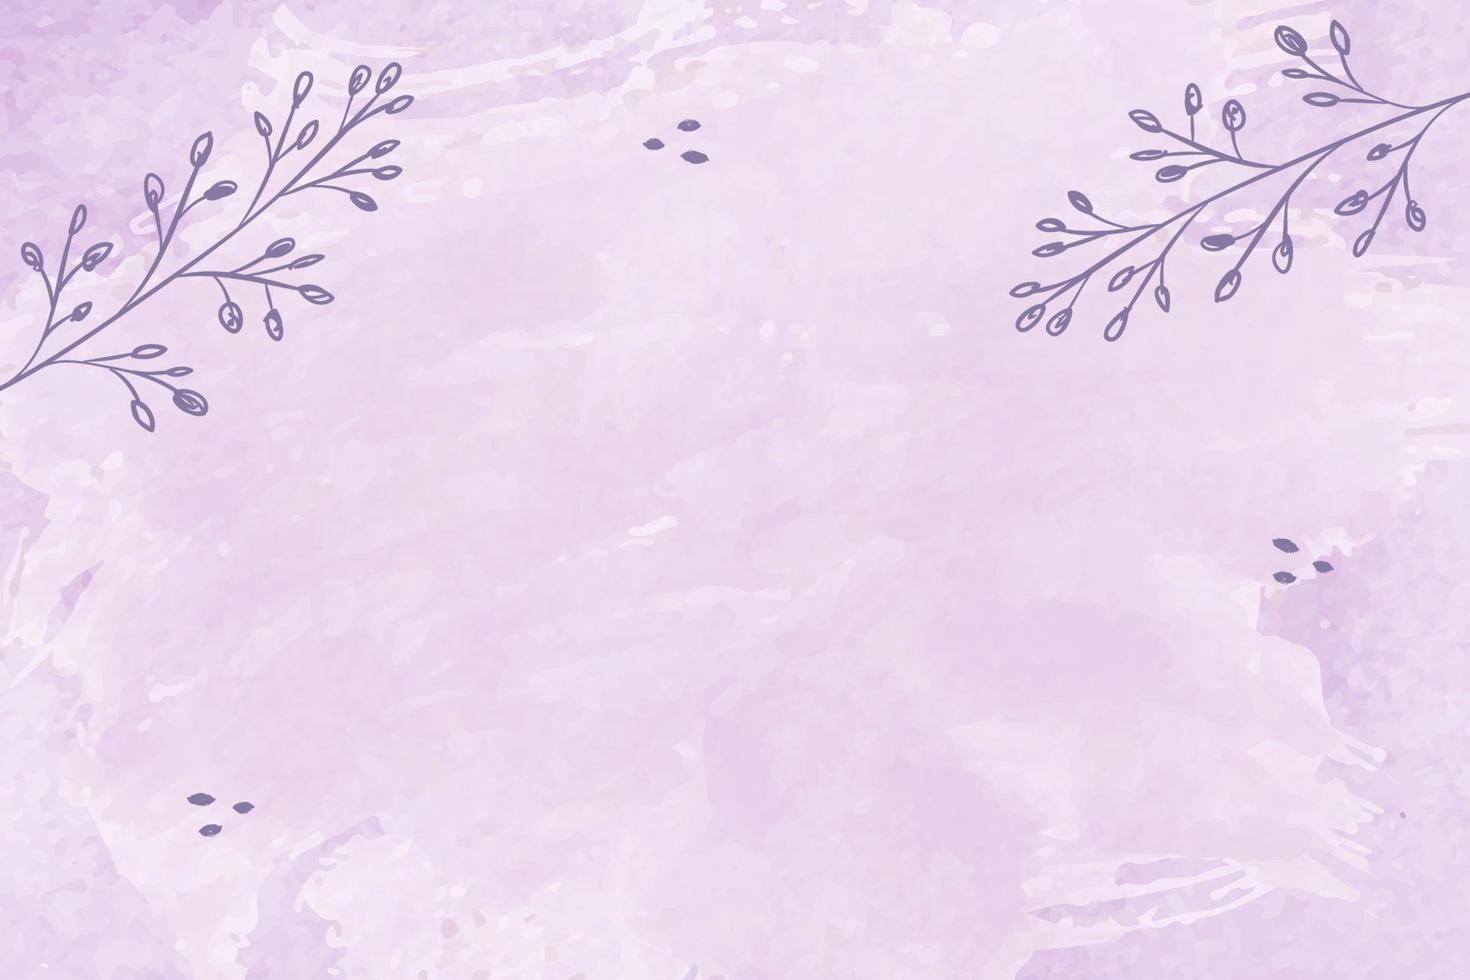 Pastel watercolor wet brush hand drawn background vector